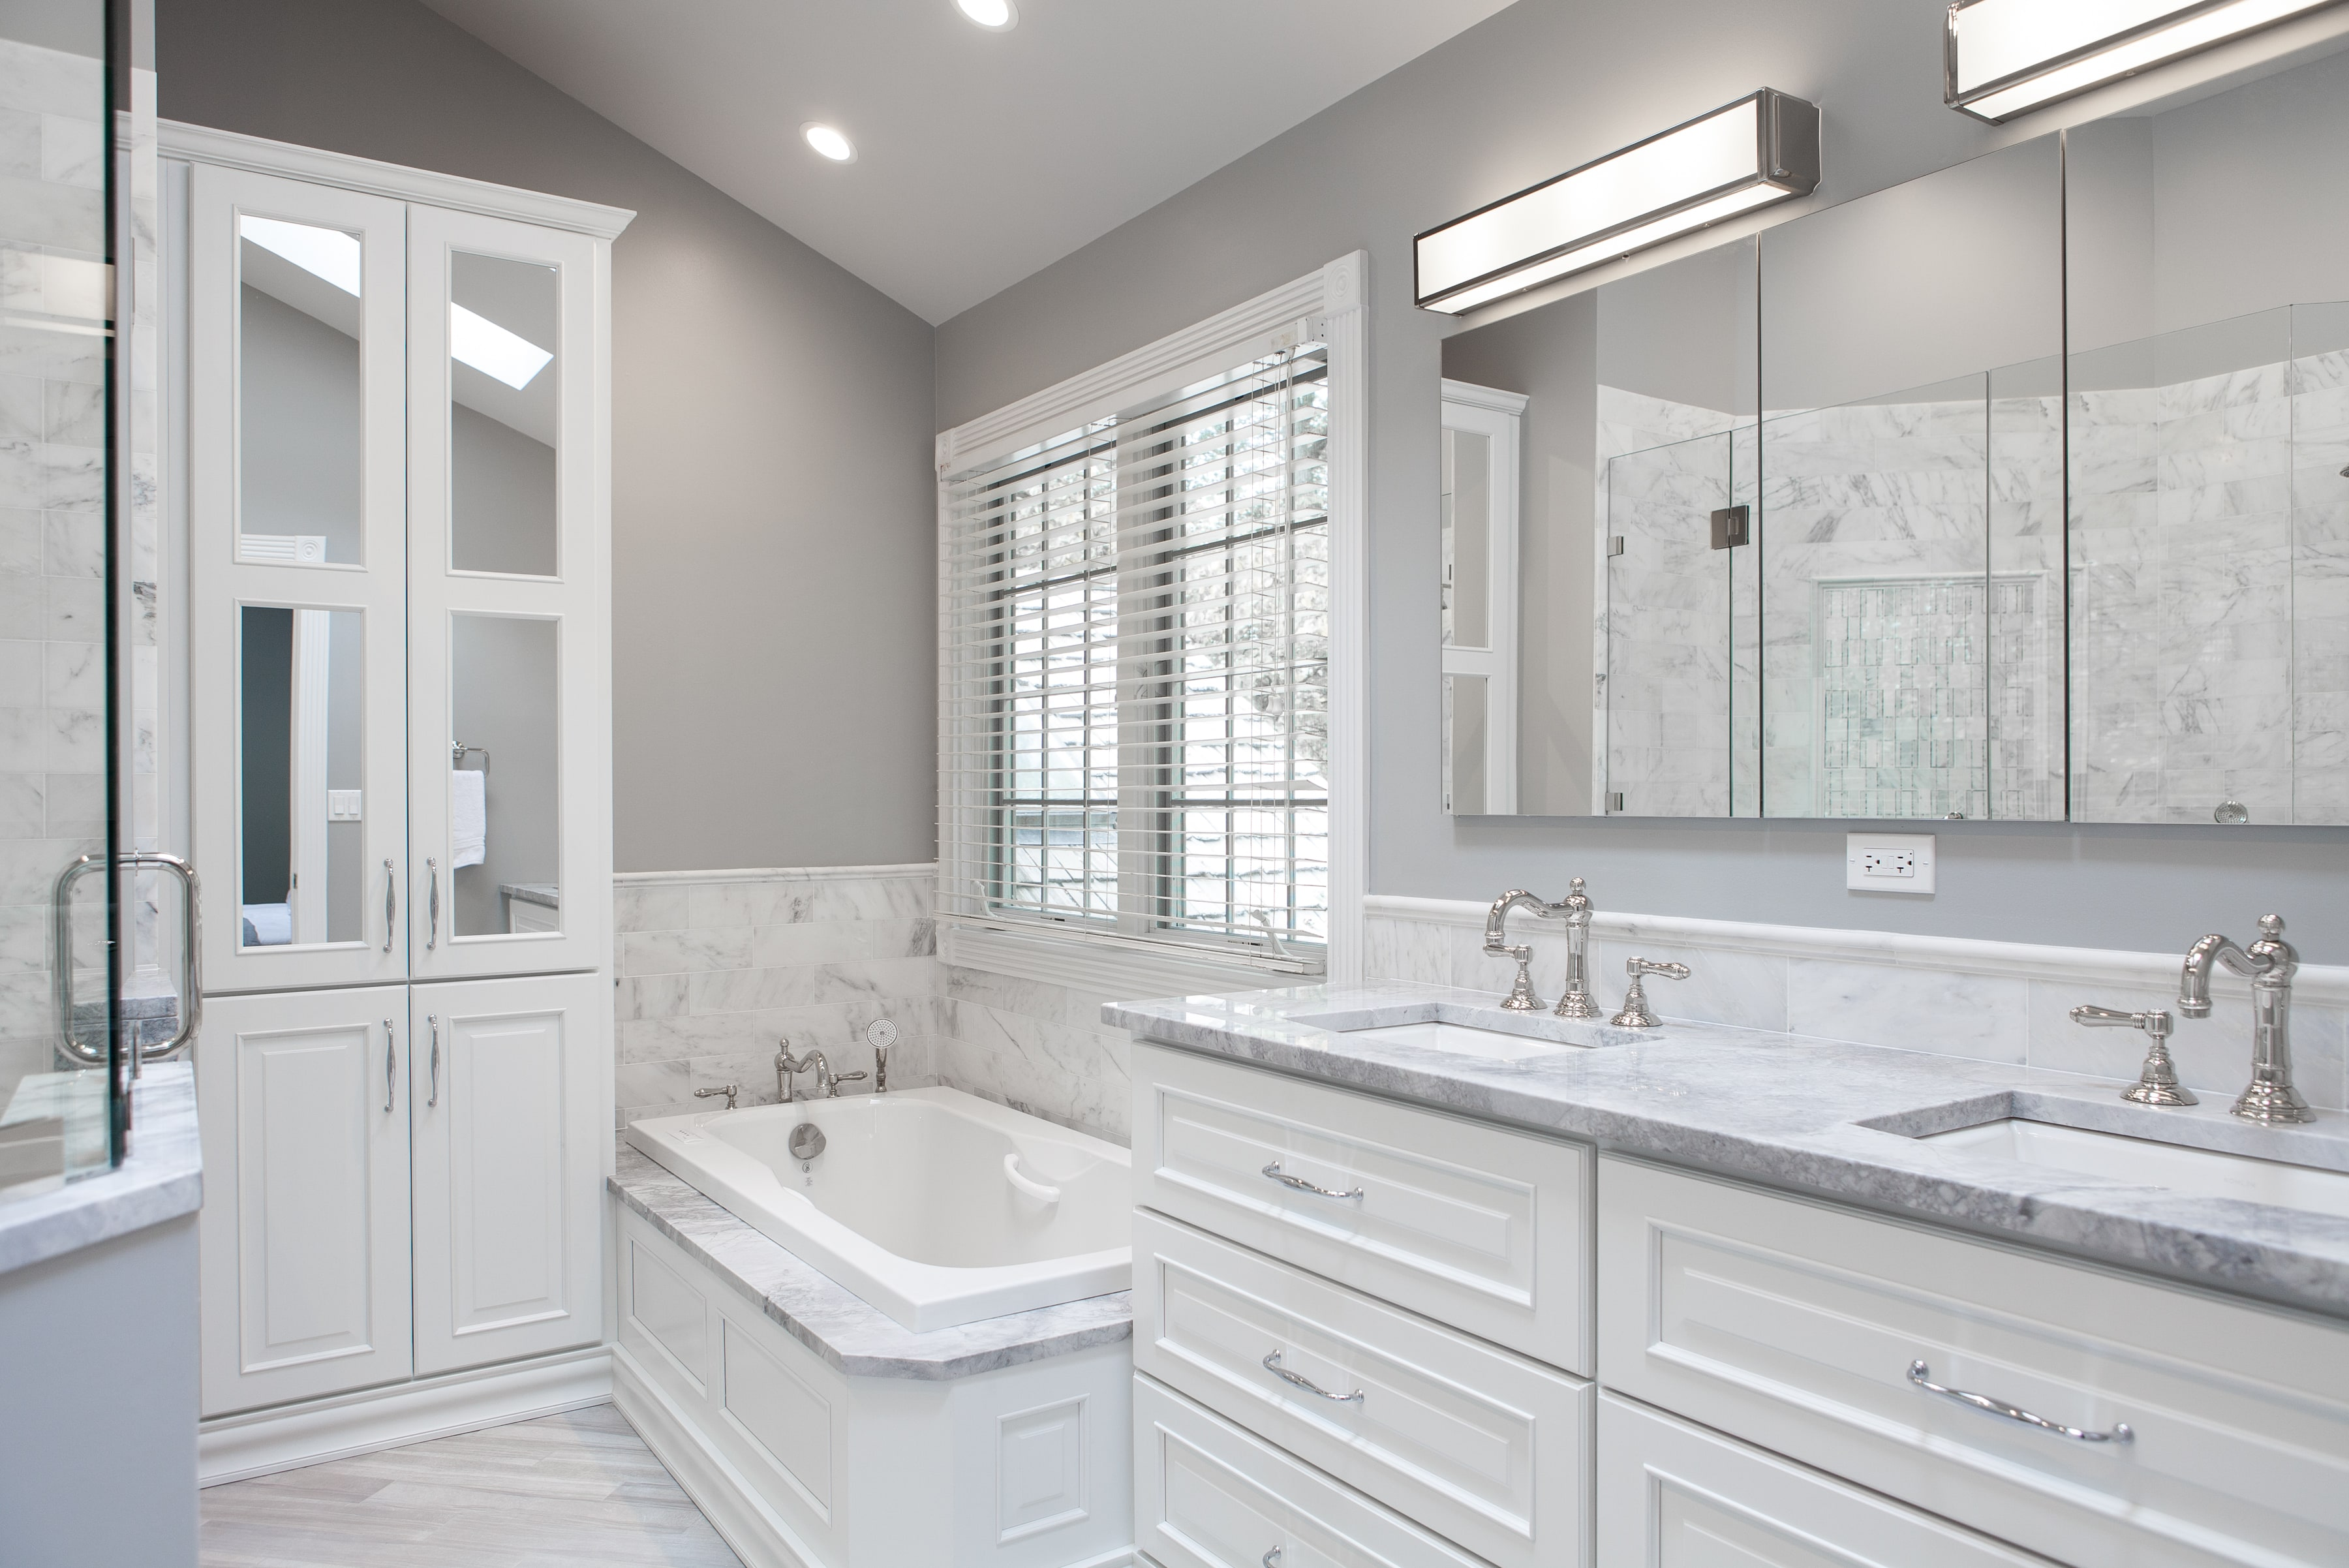 Bathroom Remodeling - Featured Project